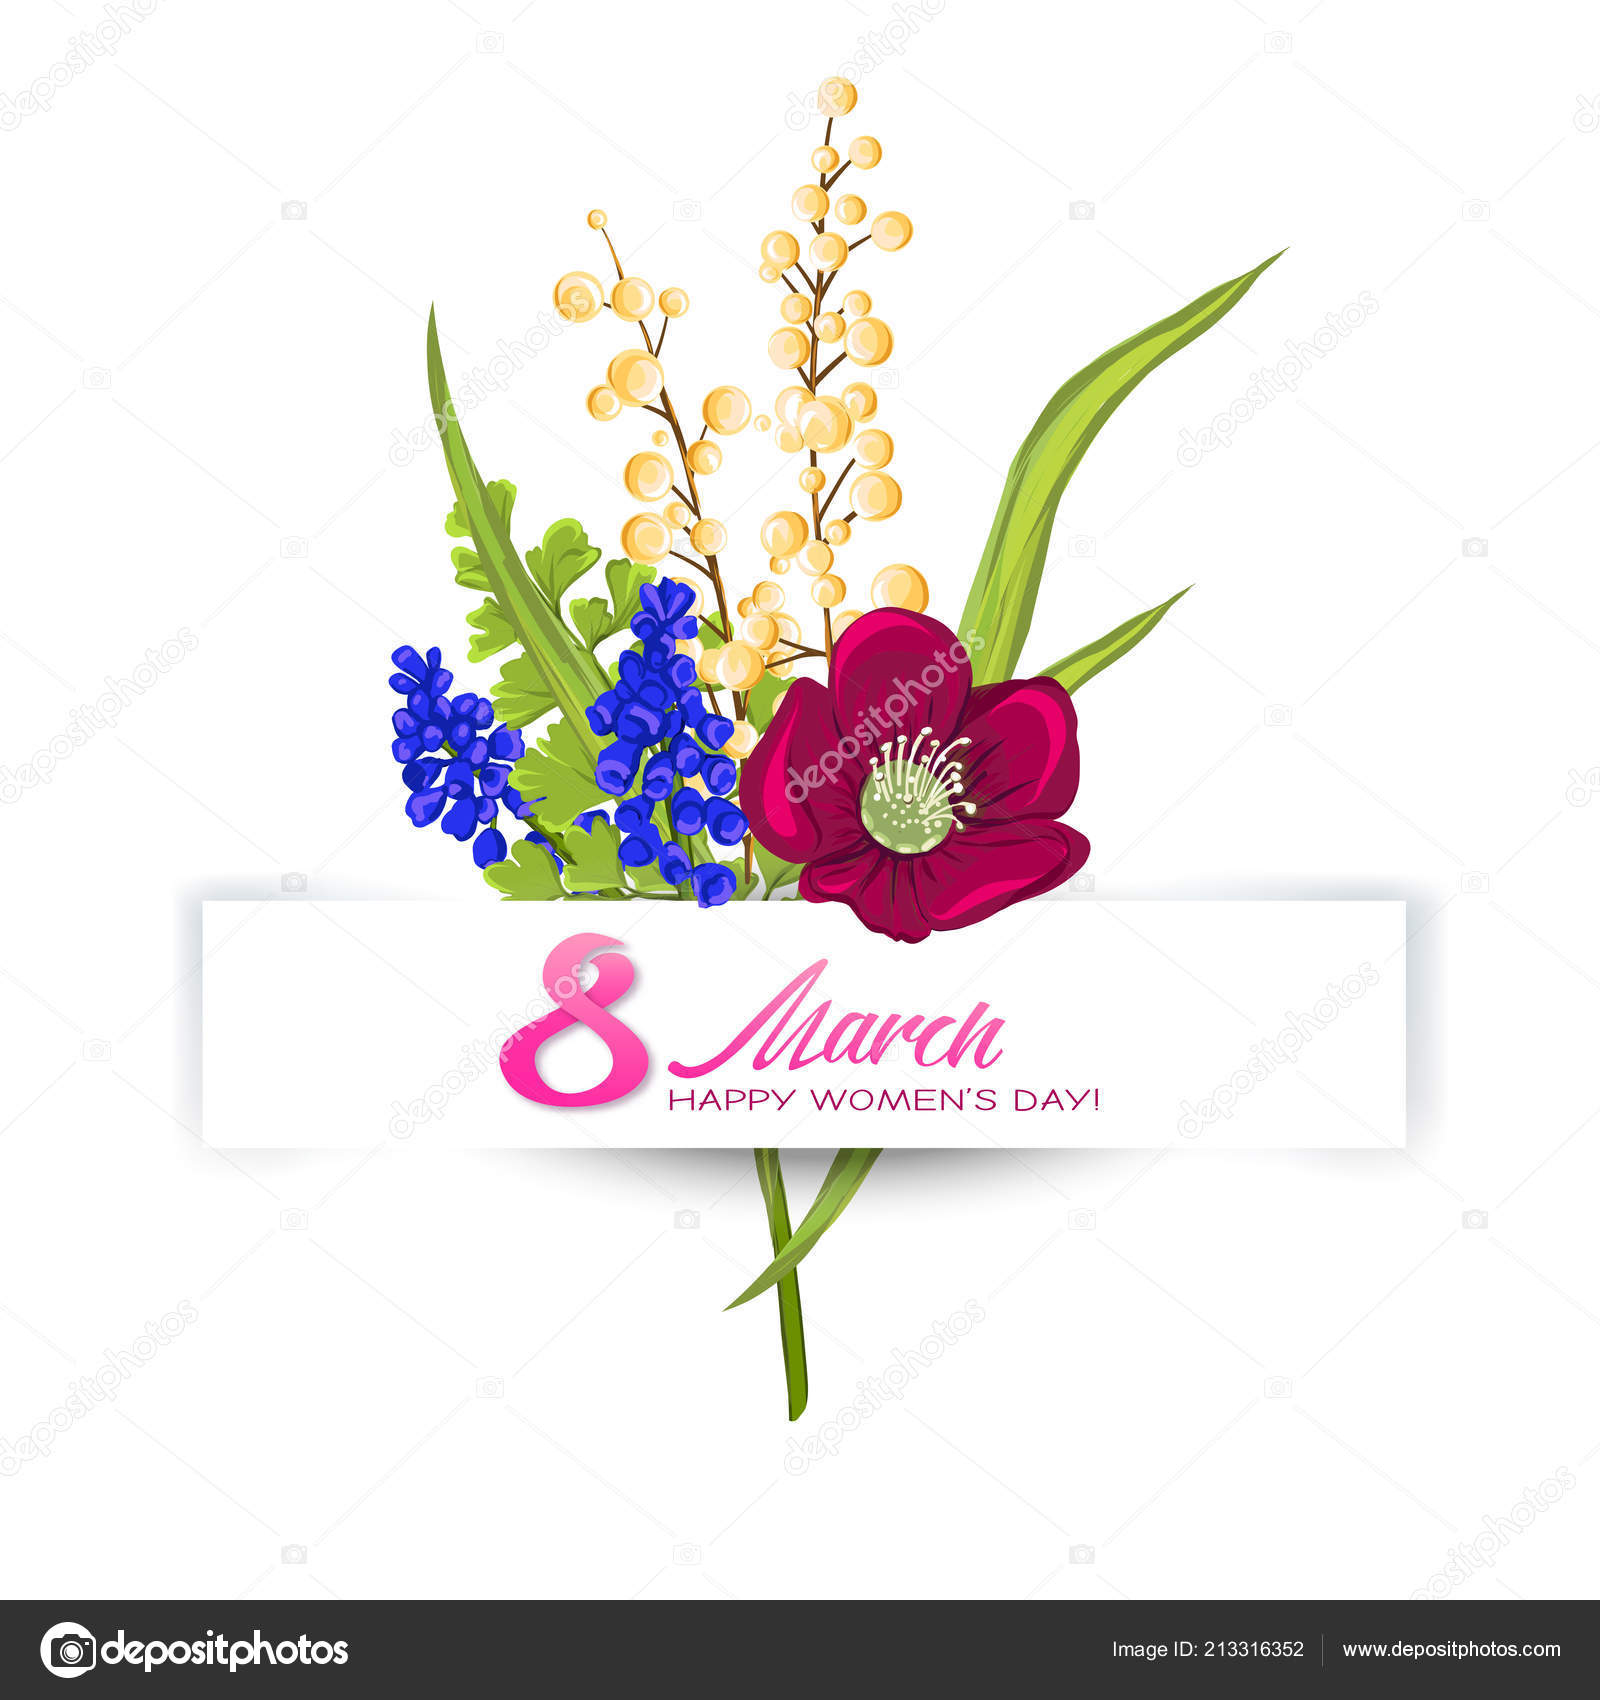 Bouquet Of Spring Flowers For 8 March Colorful Realistic Vector